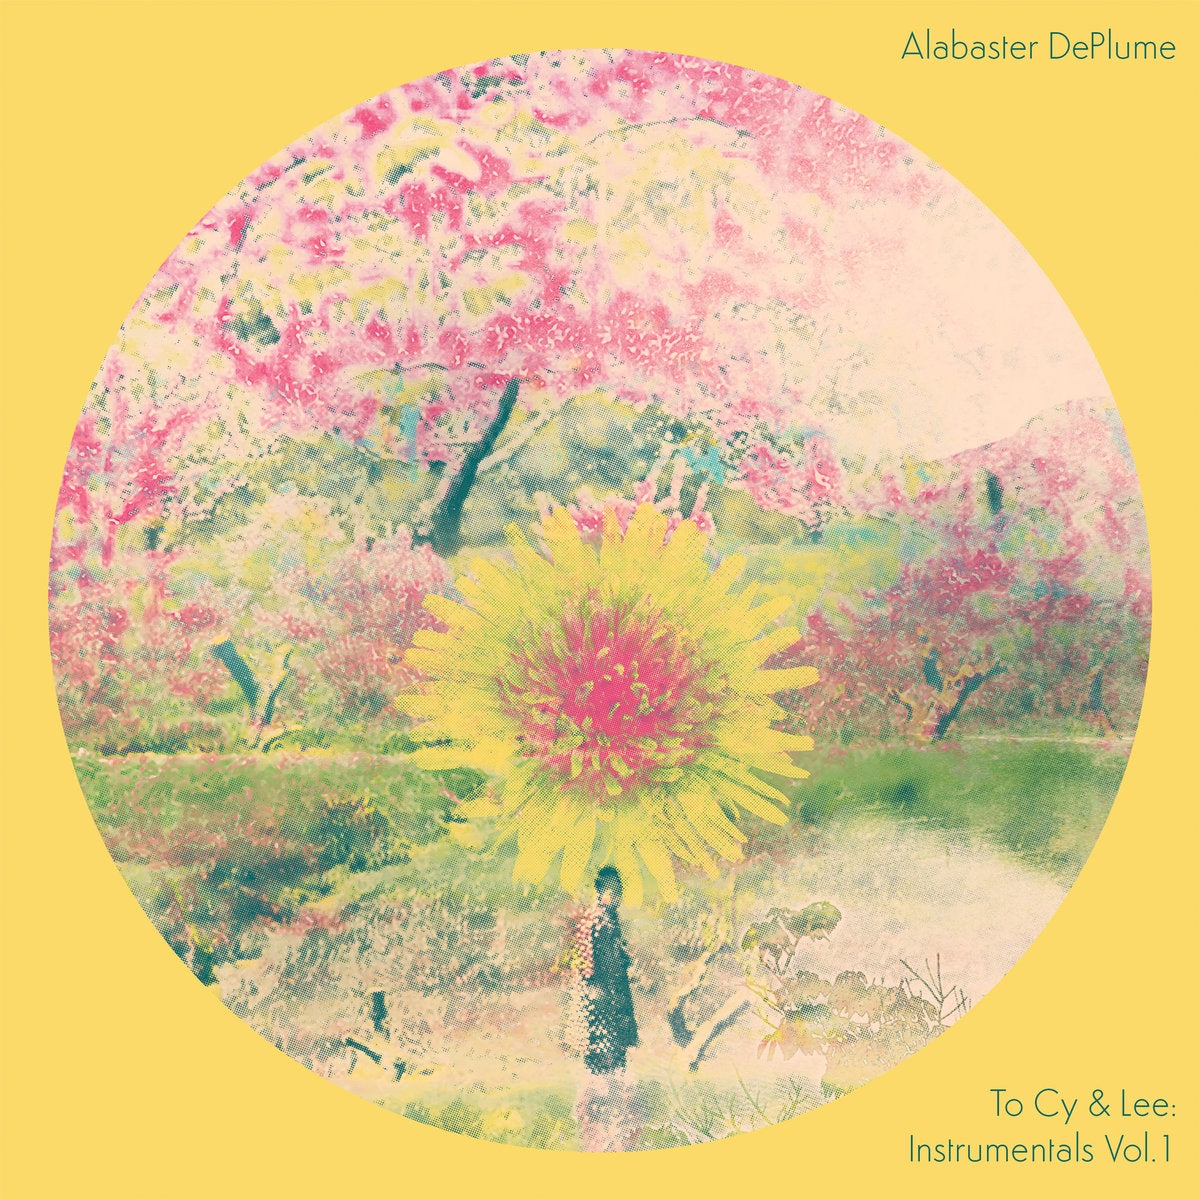 Alabaster DePlume - To Cy & Lee: Instrumentals Vol. 1- New LP Record 2020 International Anthem USA Vinyl - Free Jazz / Avant Garde